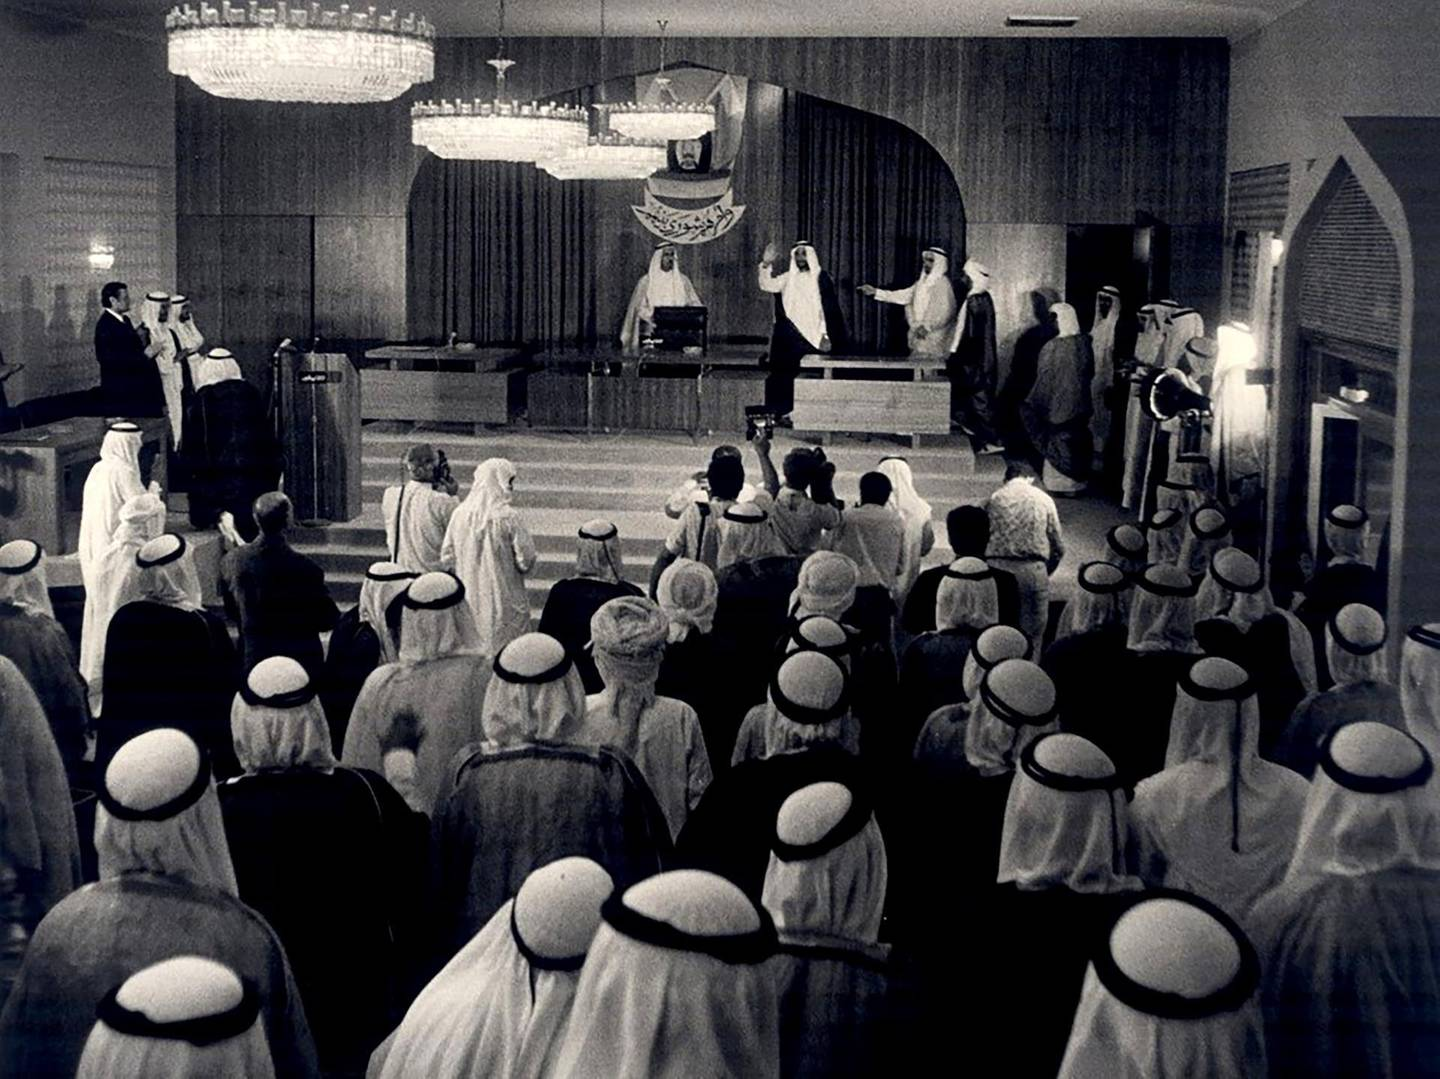 The late Sheikh Zayed Bin Sultan attending the first session of the National Consultative Council in Abu Dhabi, October 3, 1971. Photo: Al Ittihad